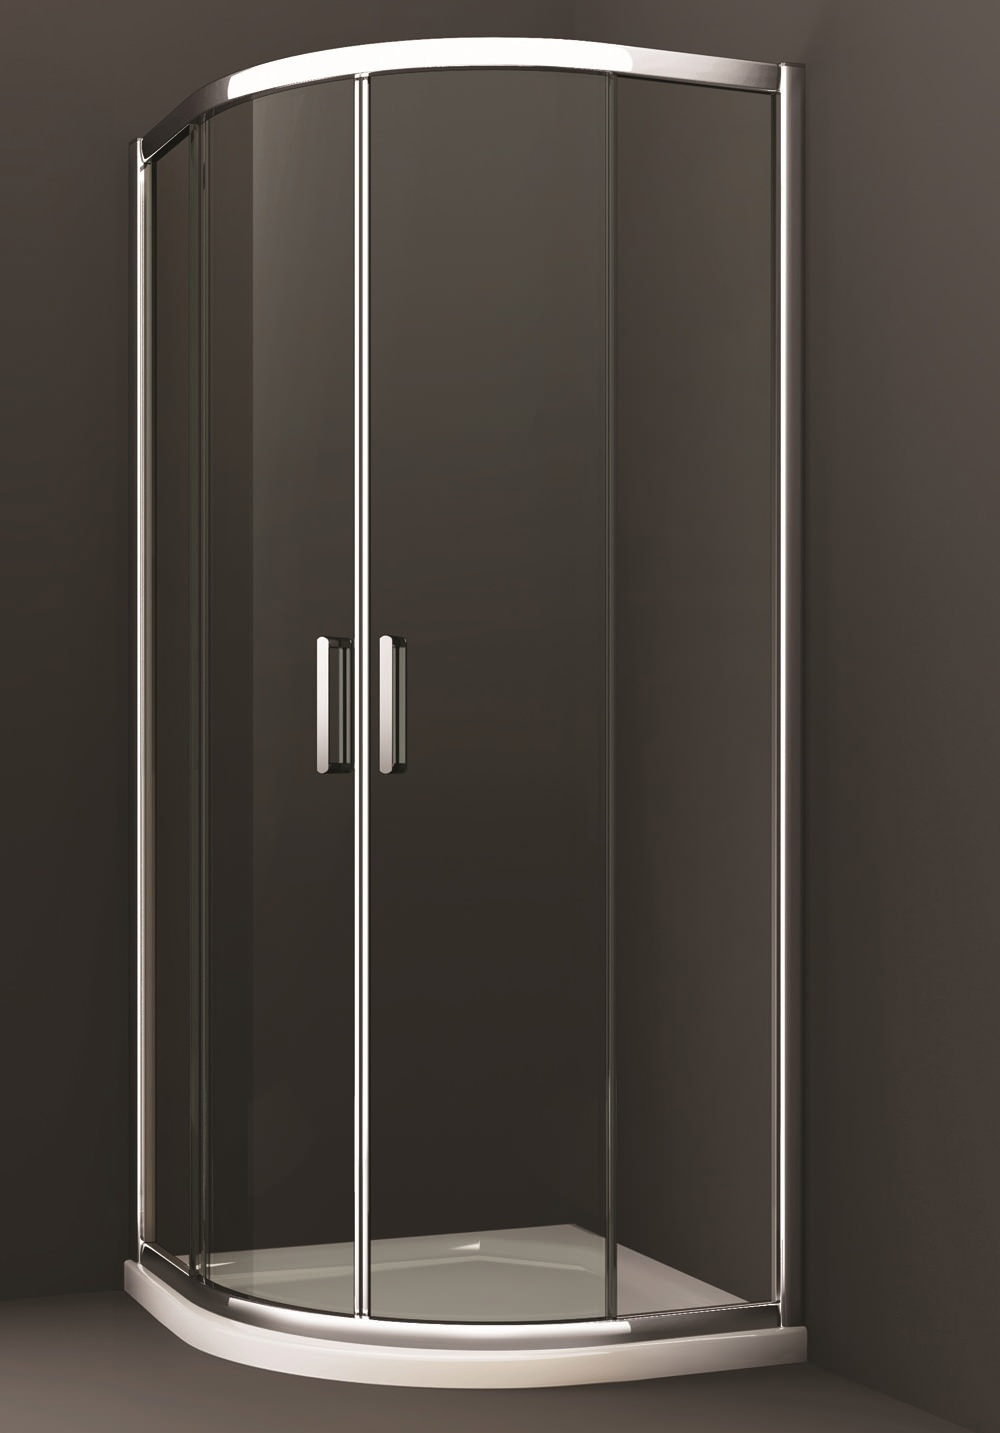 Merlyn 8 series 2 door quadrant shower enclosure 800 x 800mm for Door quadrant